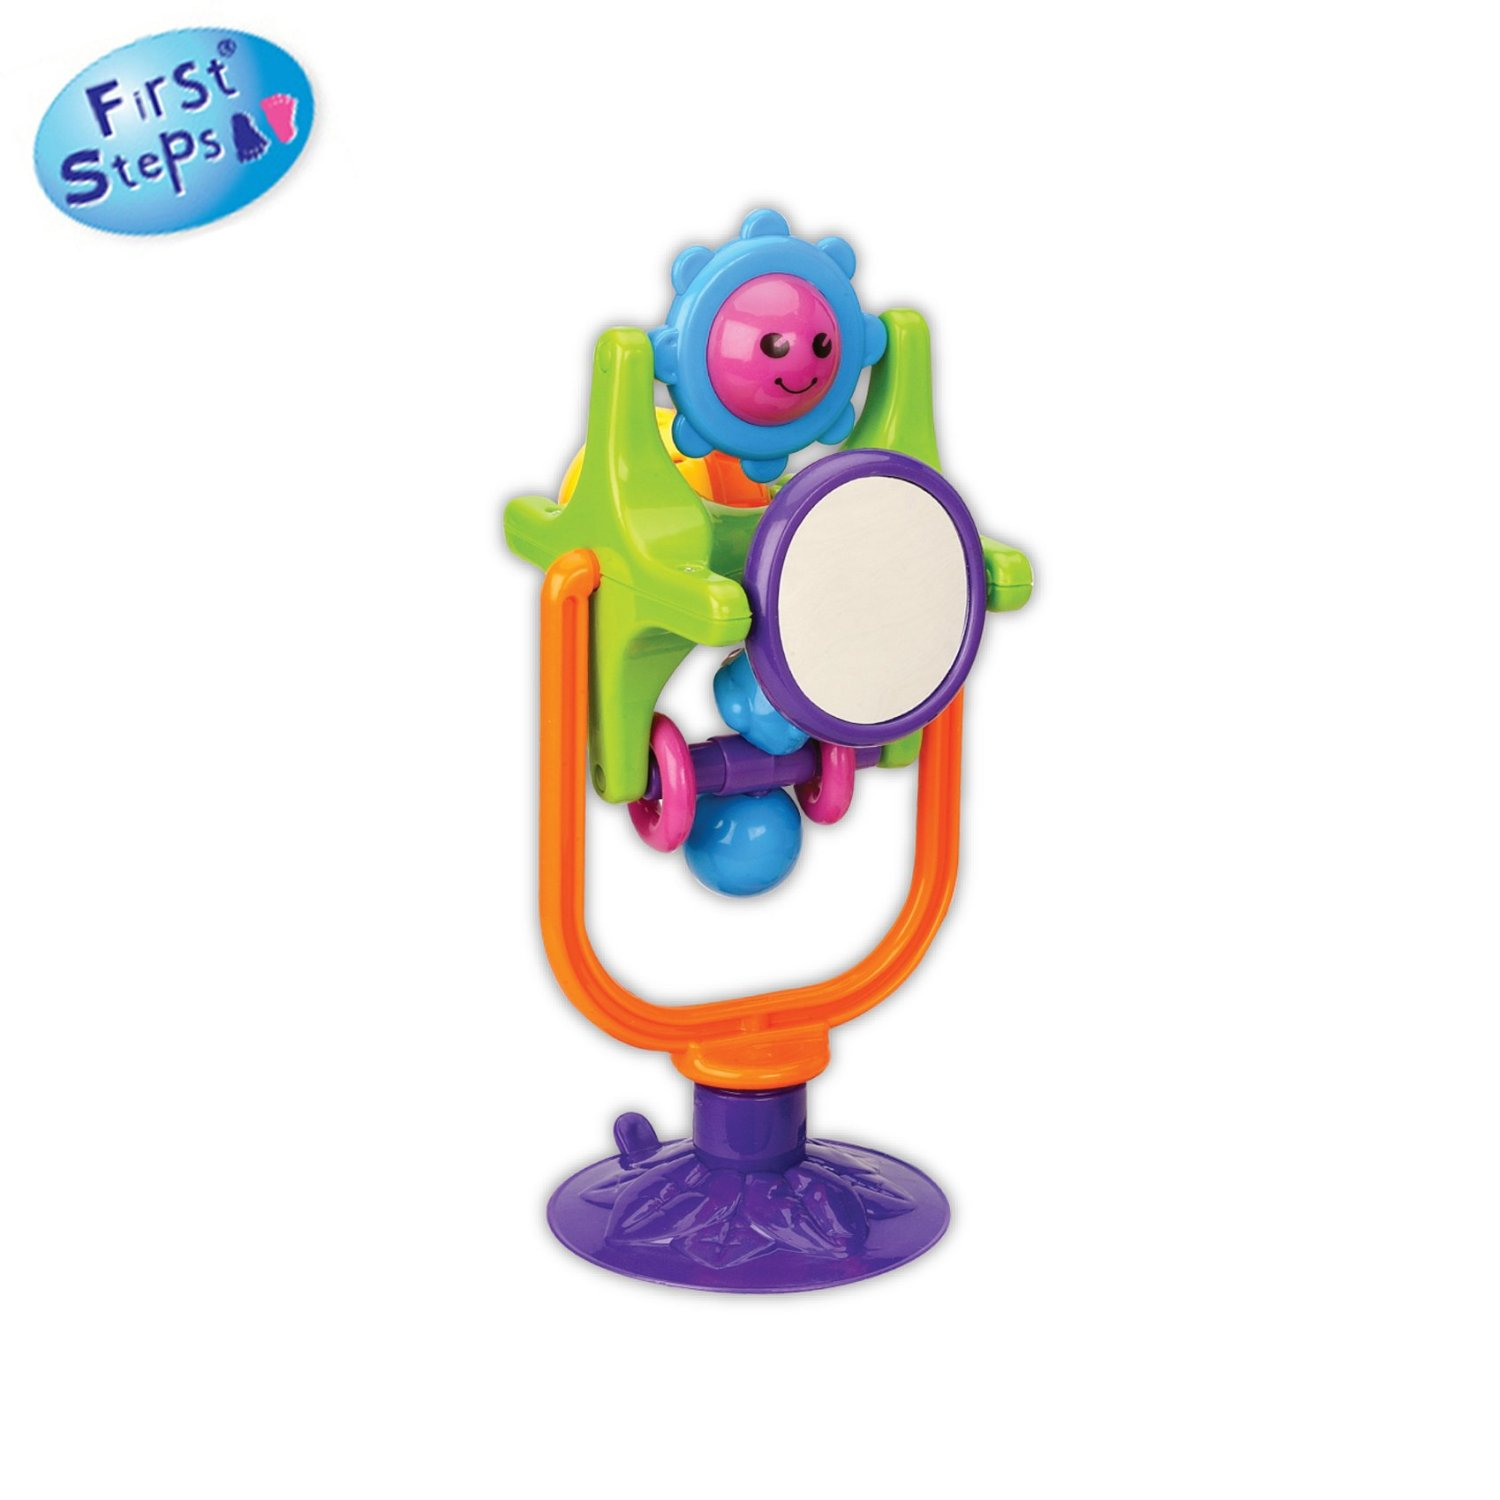 first step high chair cheap patio chairs steps toy with acrobat mirror ball